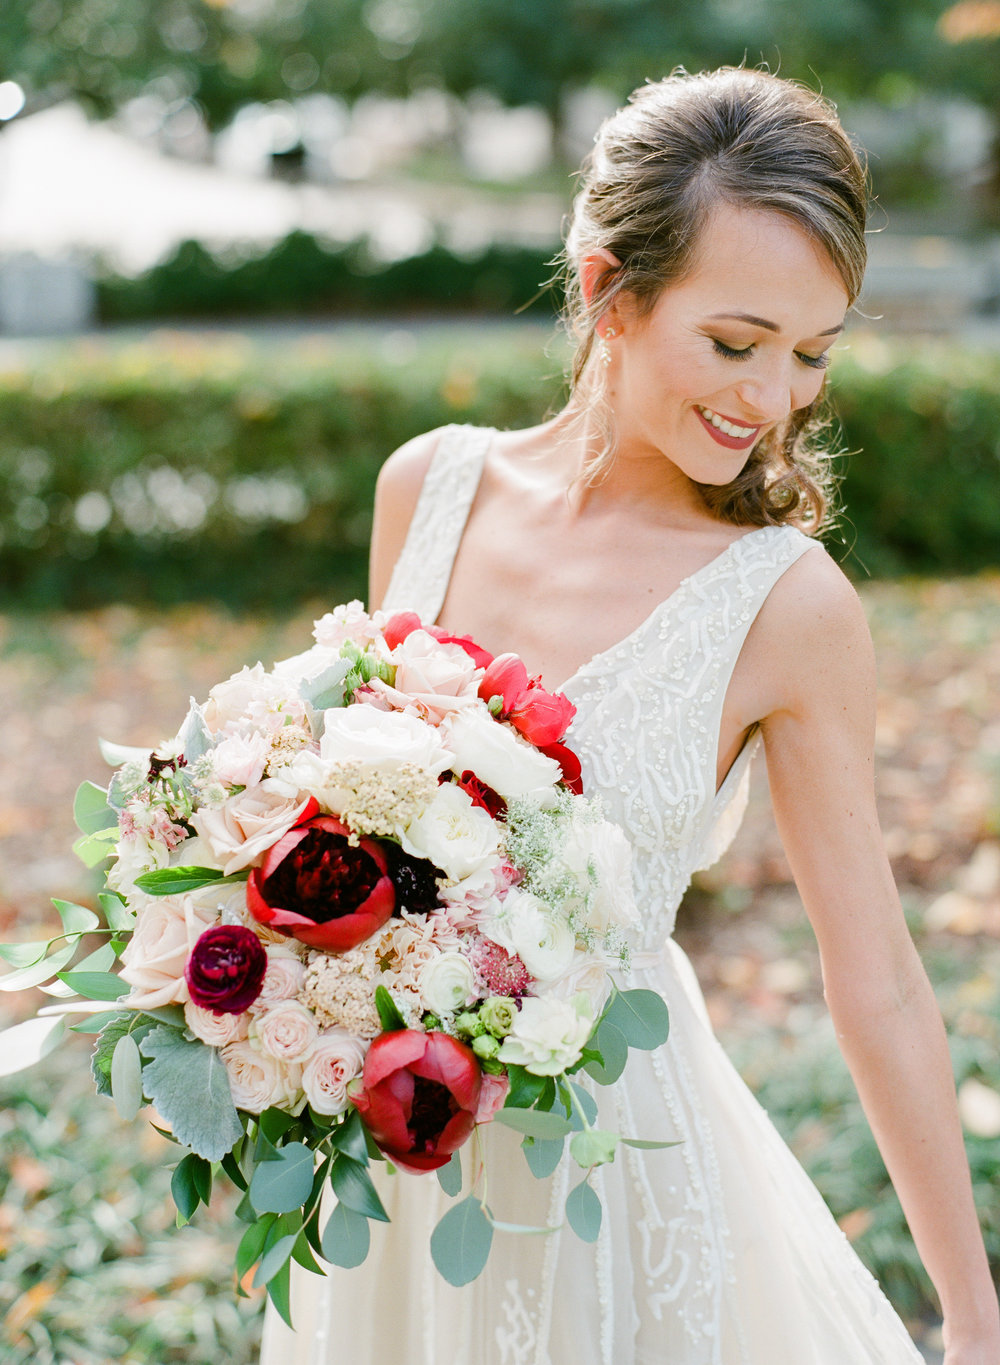 ivory-and-beau-bridal-boutique-savannah-wedding-planner-the-happy-bloom-photography-bethesda-academy-wedding-morris-center-wedding-savannah-wedding-1.jpg